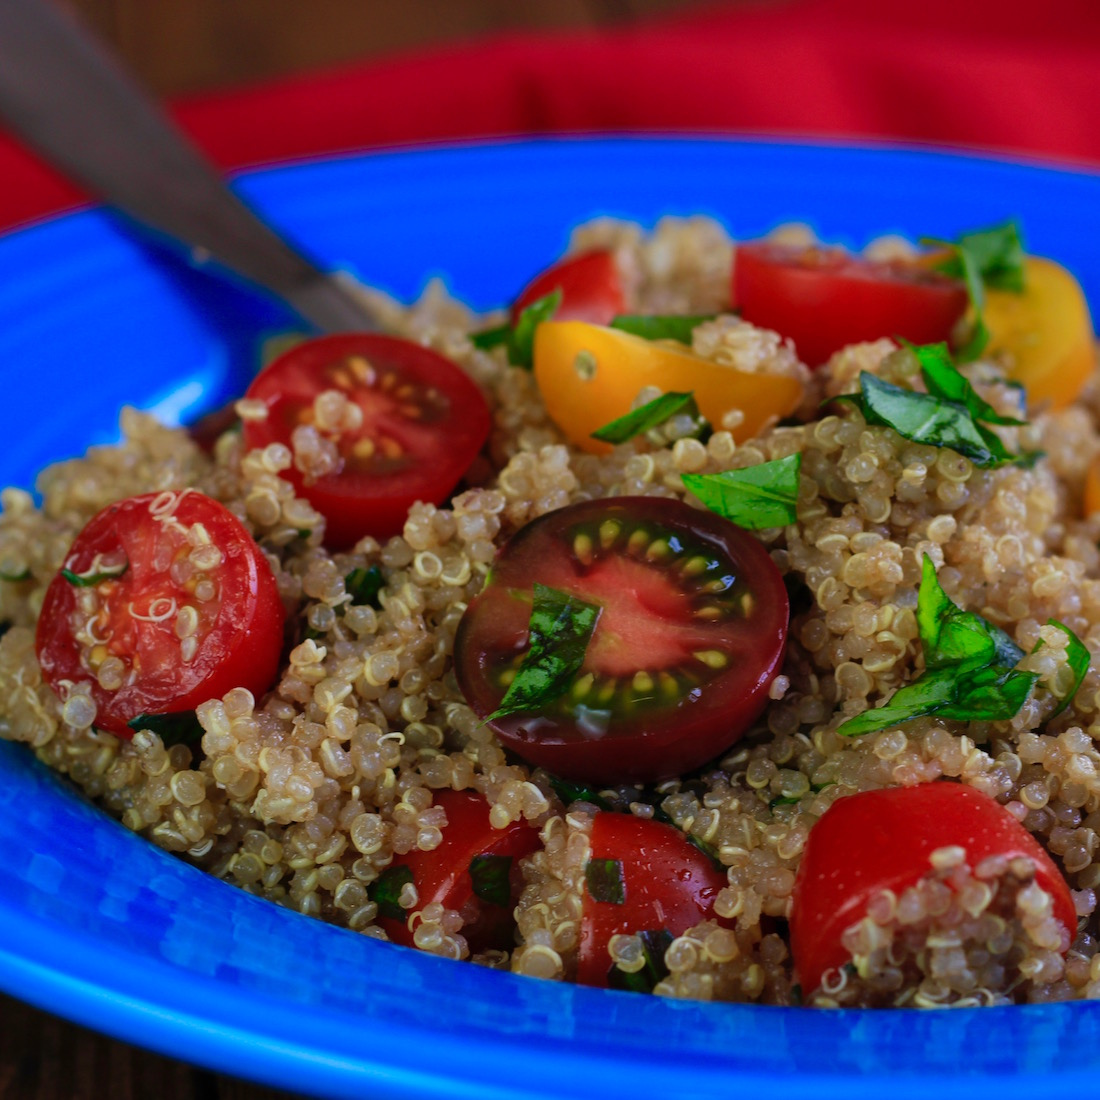 tomato-basil-and-garlic-quinoa-salad2